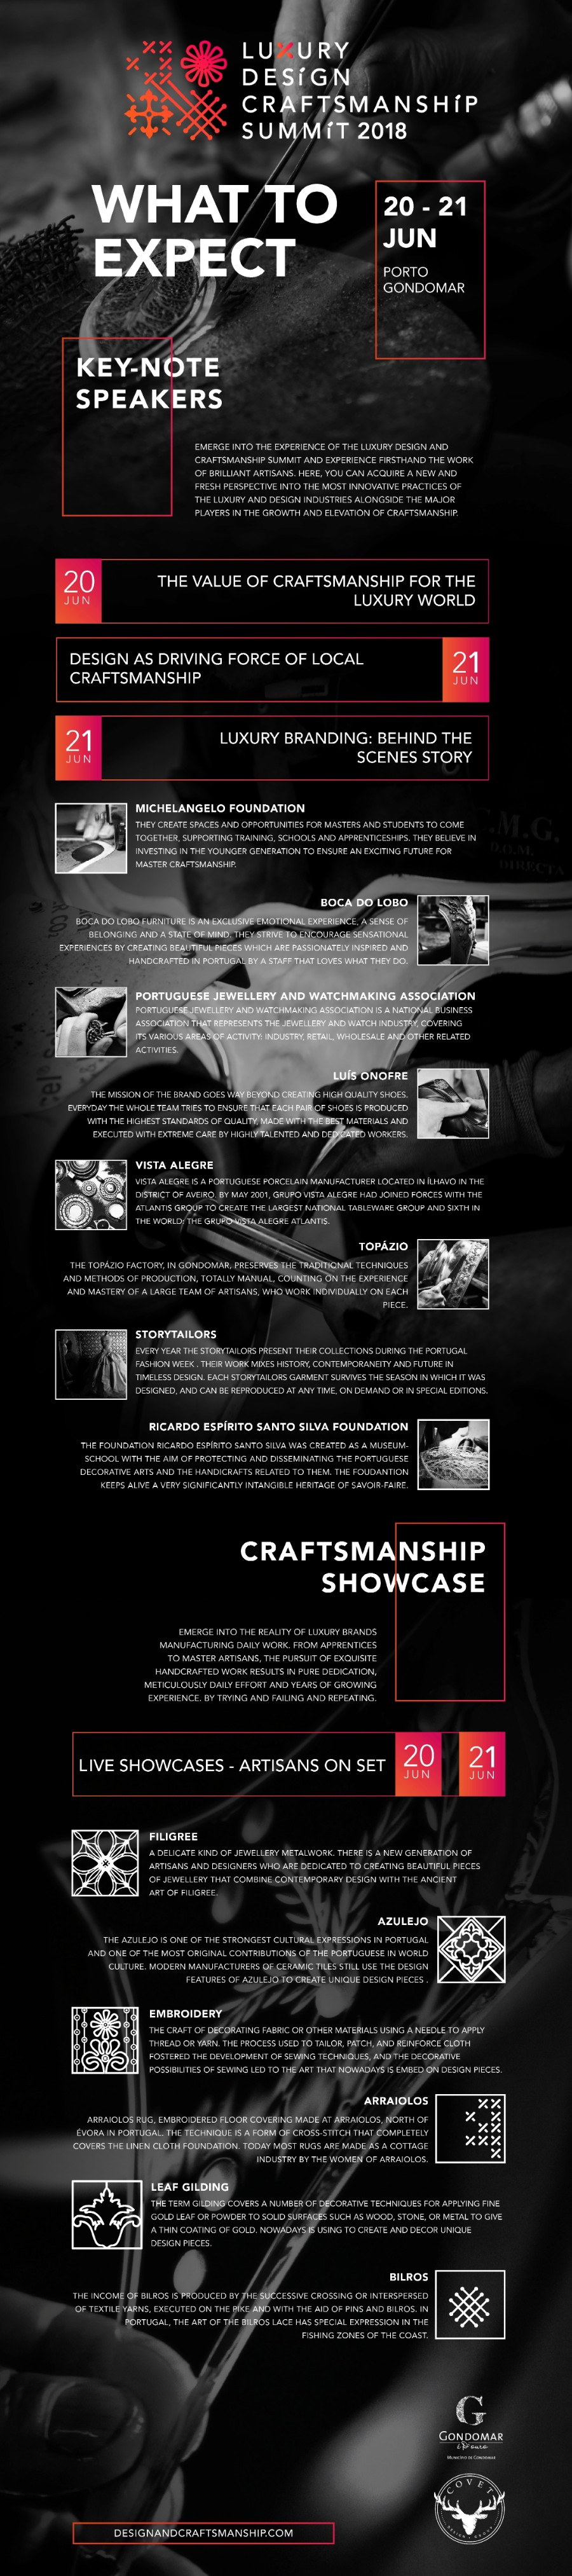 Craftsmanship Discover Who Are The Speakers at Luxury Design & Craftsmanship Summit 2018 Luxury Design Craftsmanship Summit 2018 Discover The Speakers 1 1